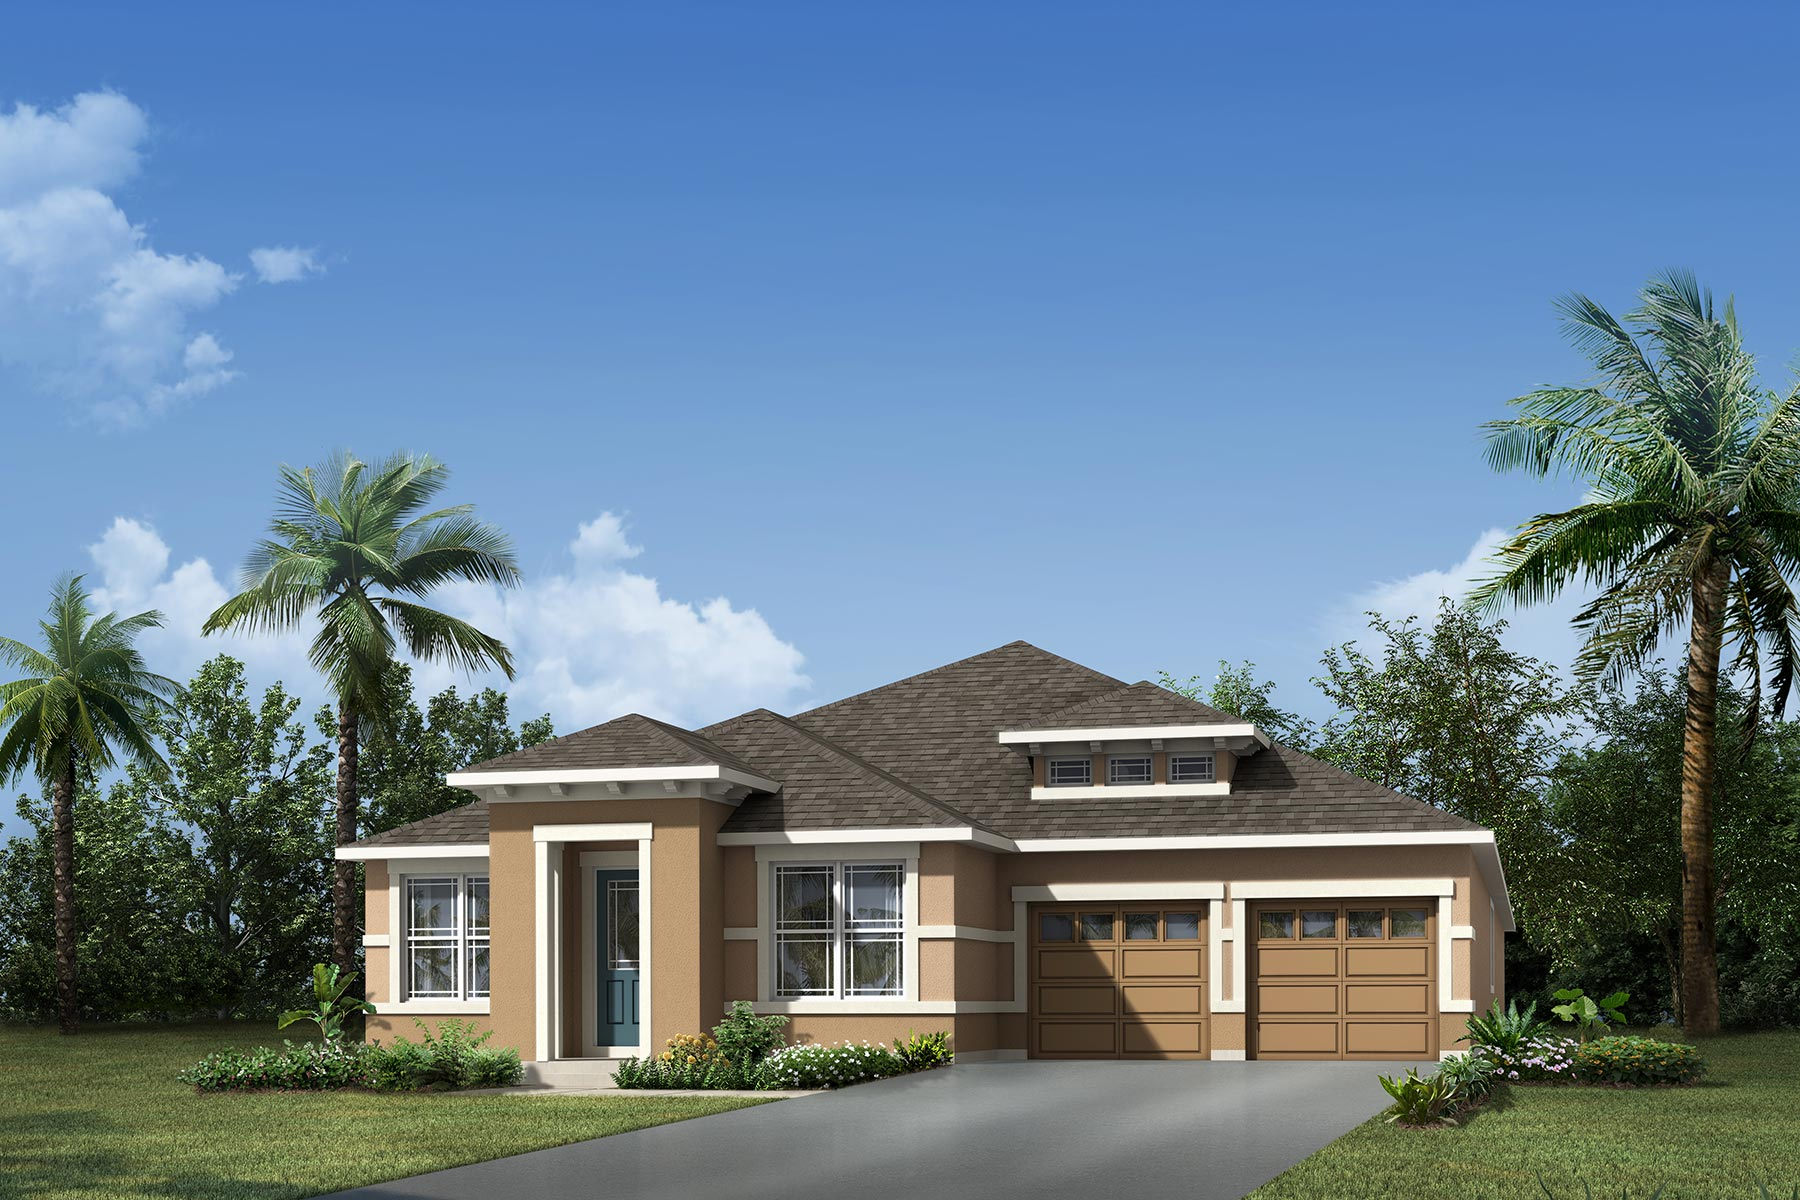 Laurel Plan Elevation Front at Meridian Parks in Orlando Florida by Mattamy Homes